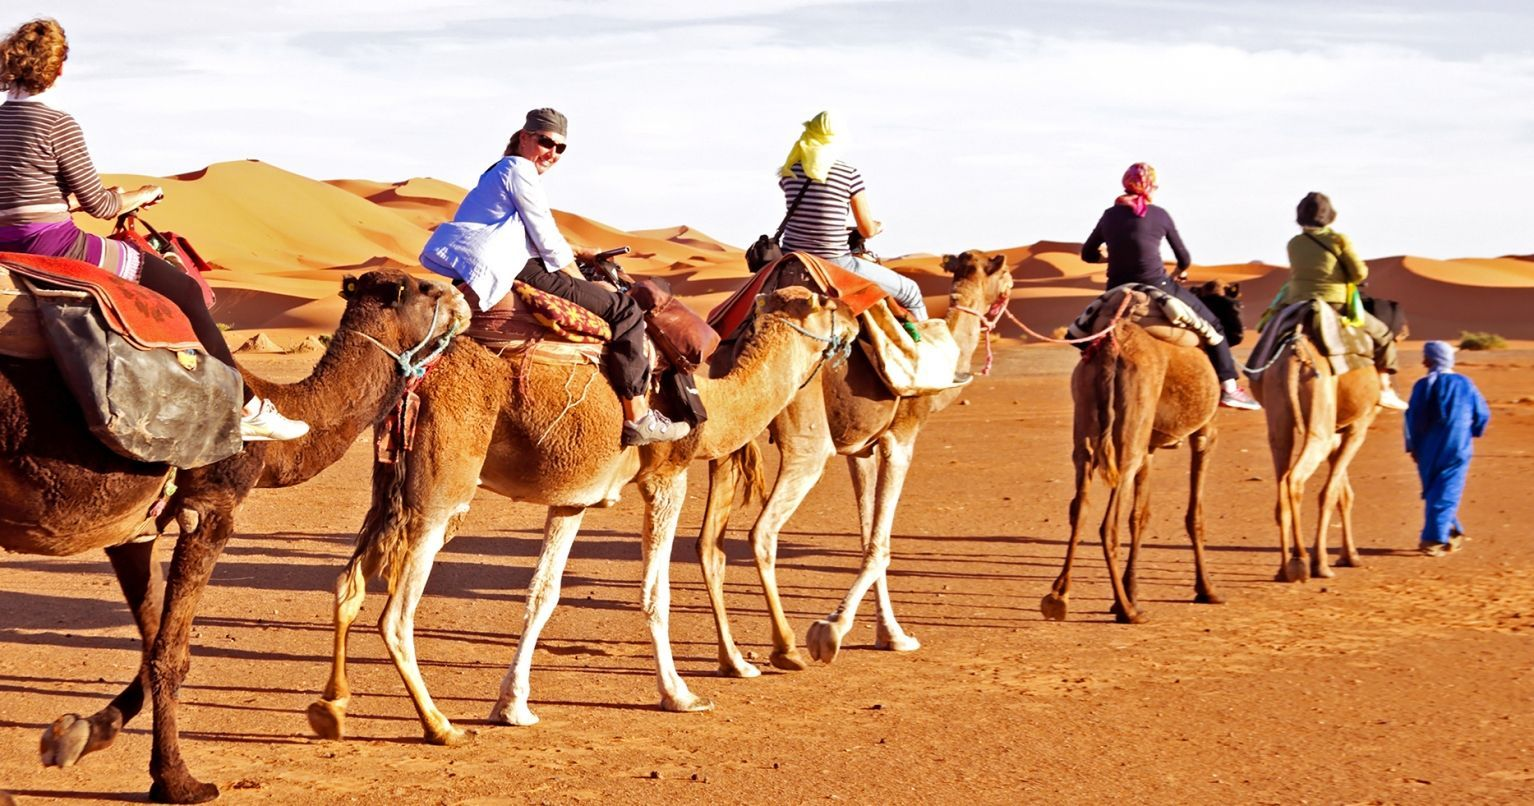 Morocco Camel Ride experience gifts